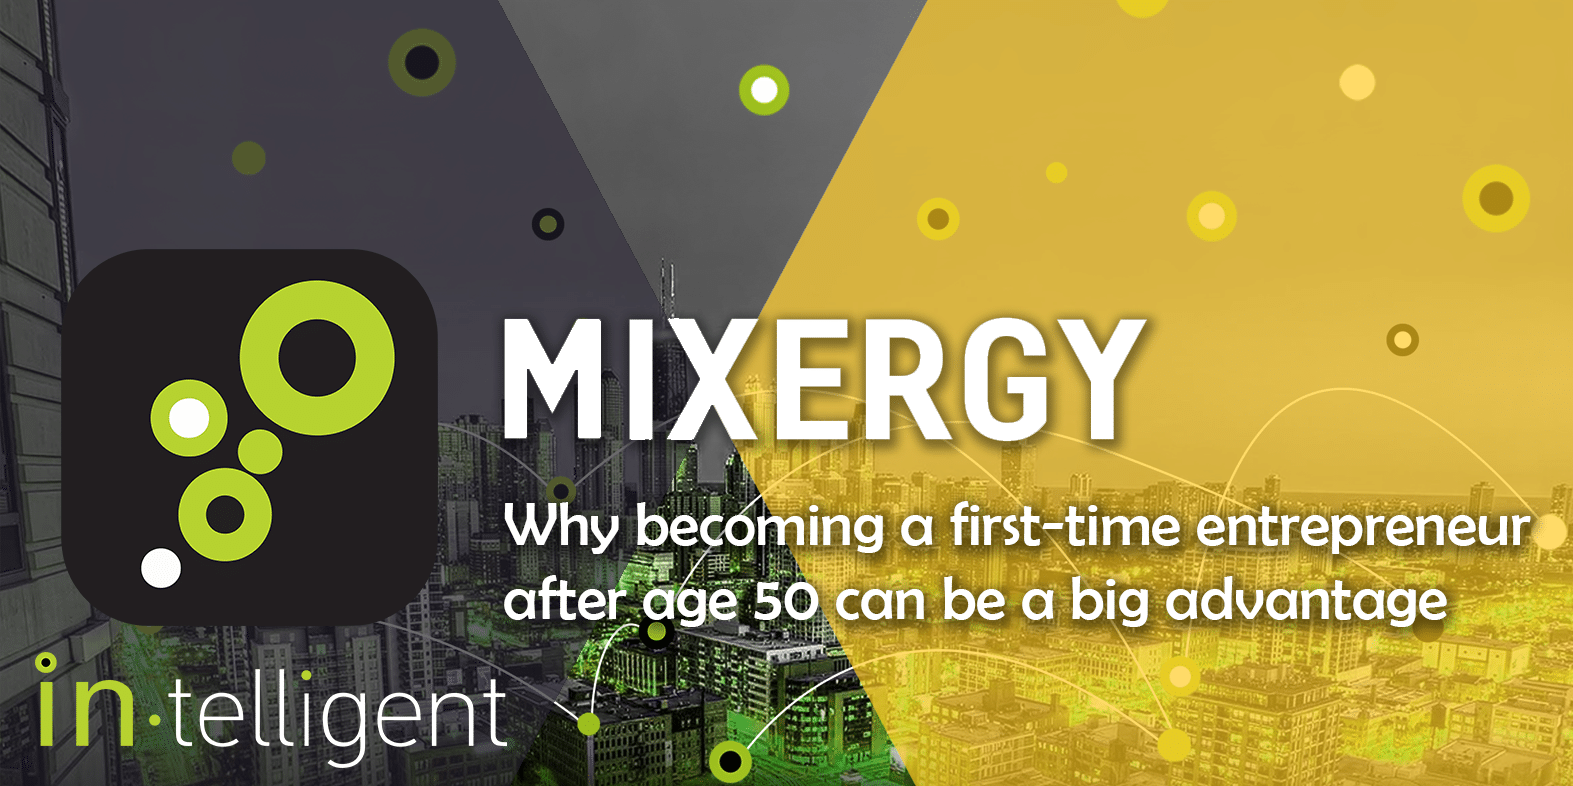 IN-TELLIGENT CEO ALLAN SUTHERLAND FEATURED ON MIXERGY PODCAST